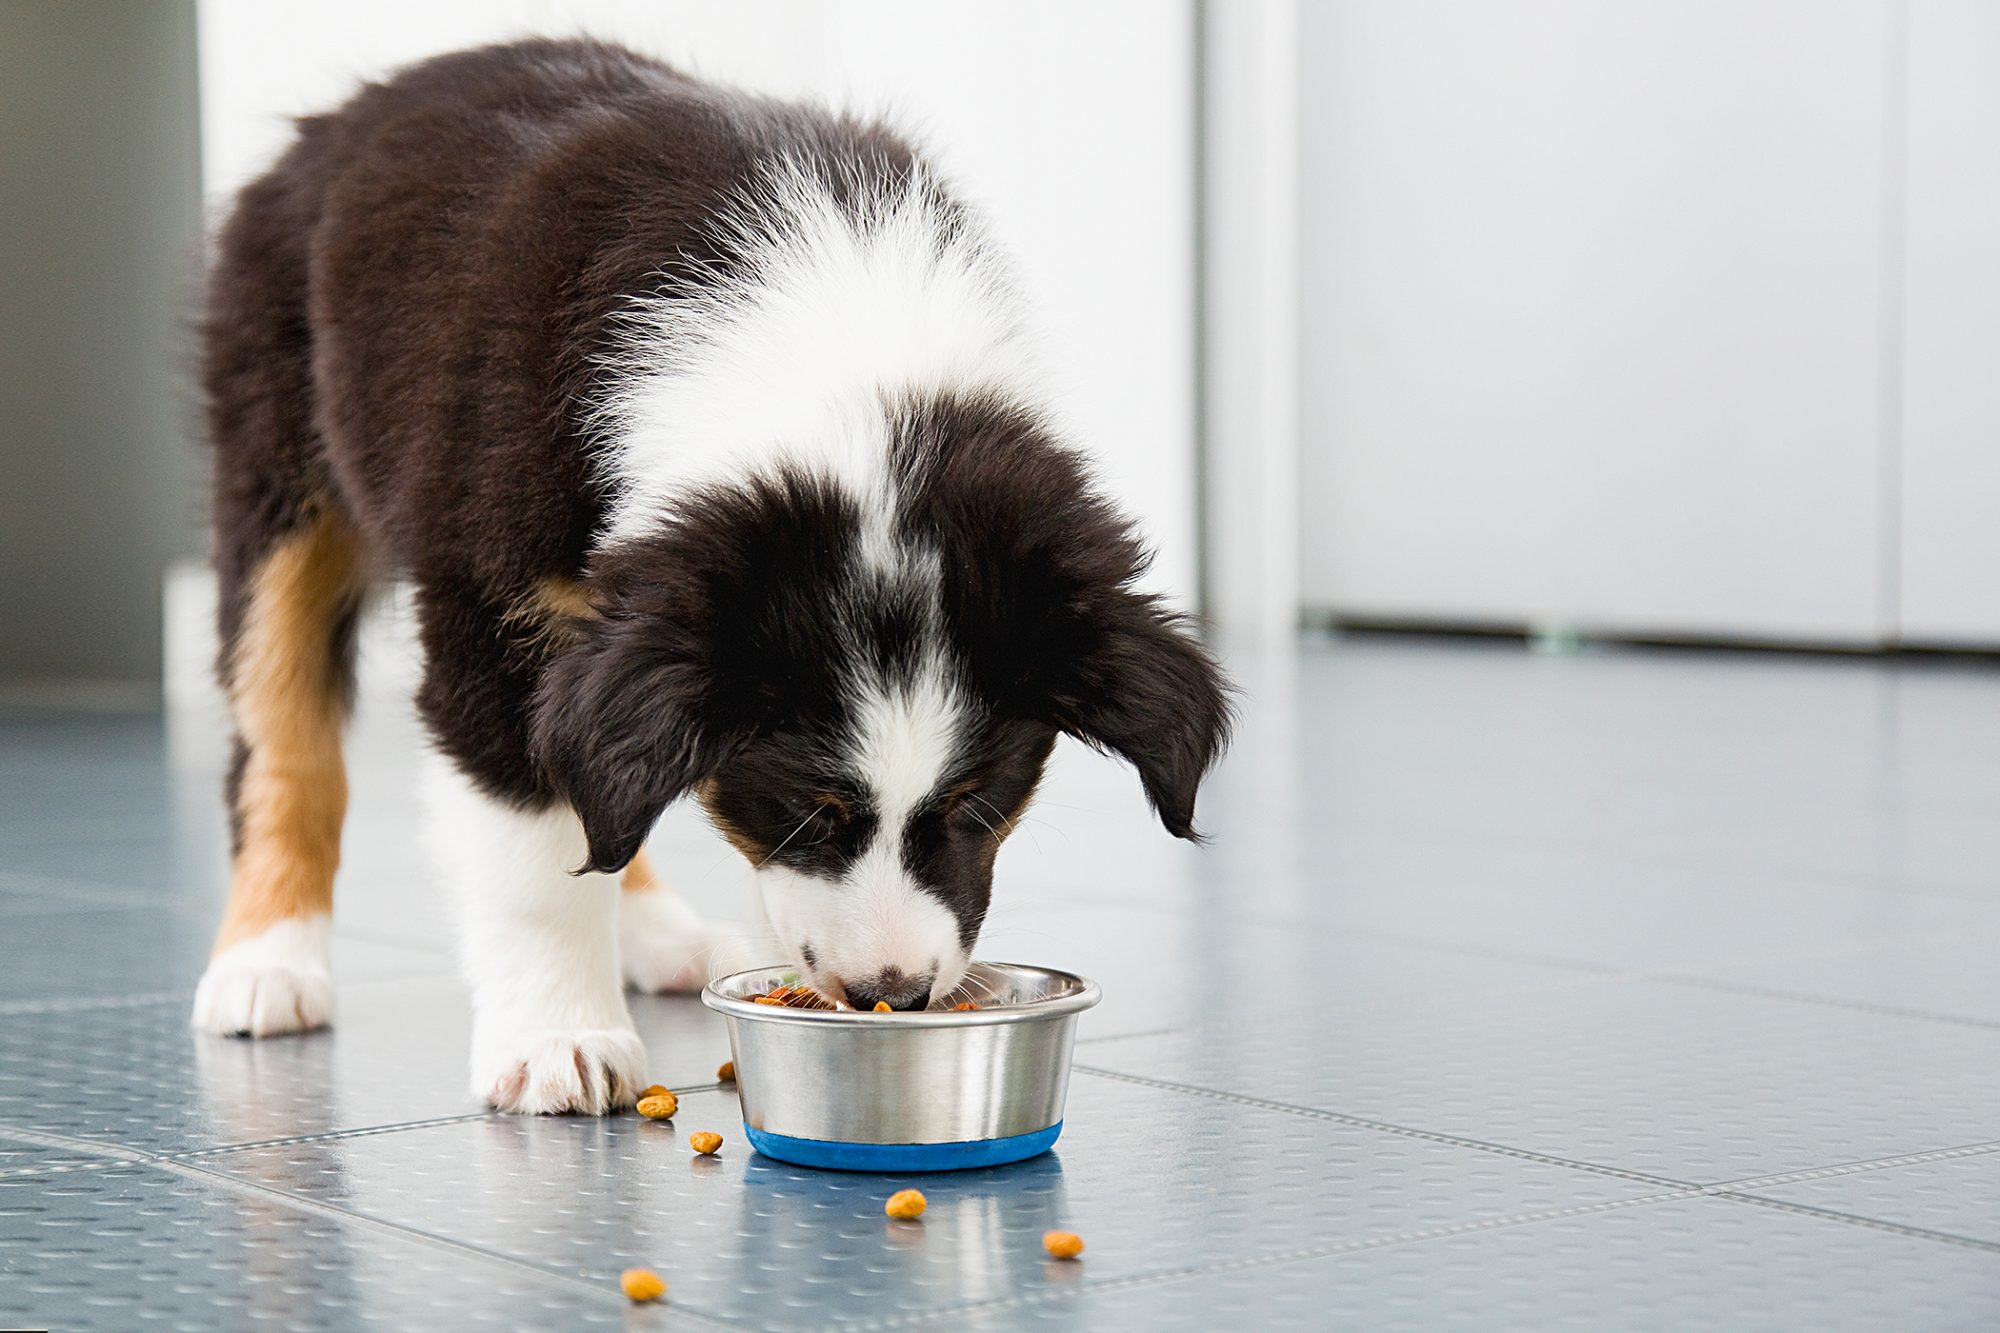 border collie puppy eating dog food from a bowl